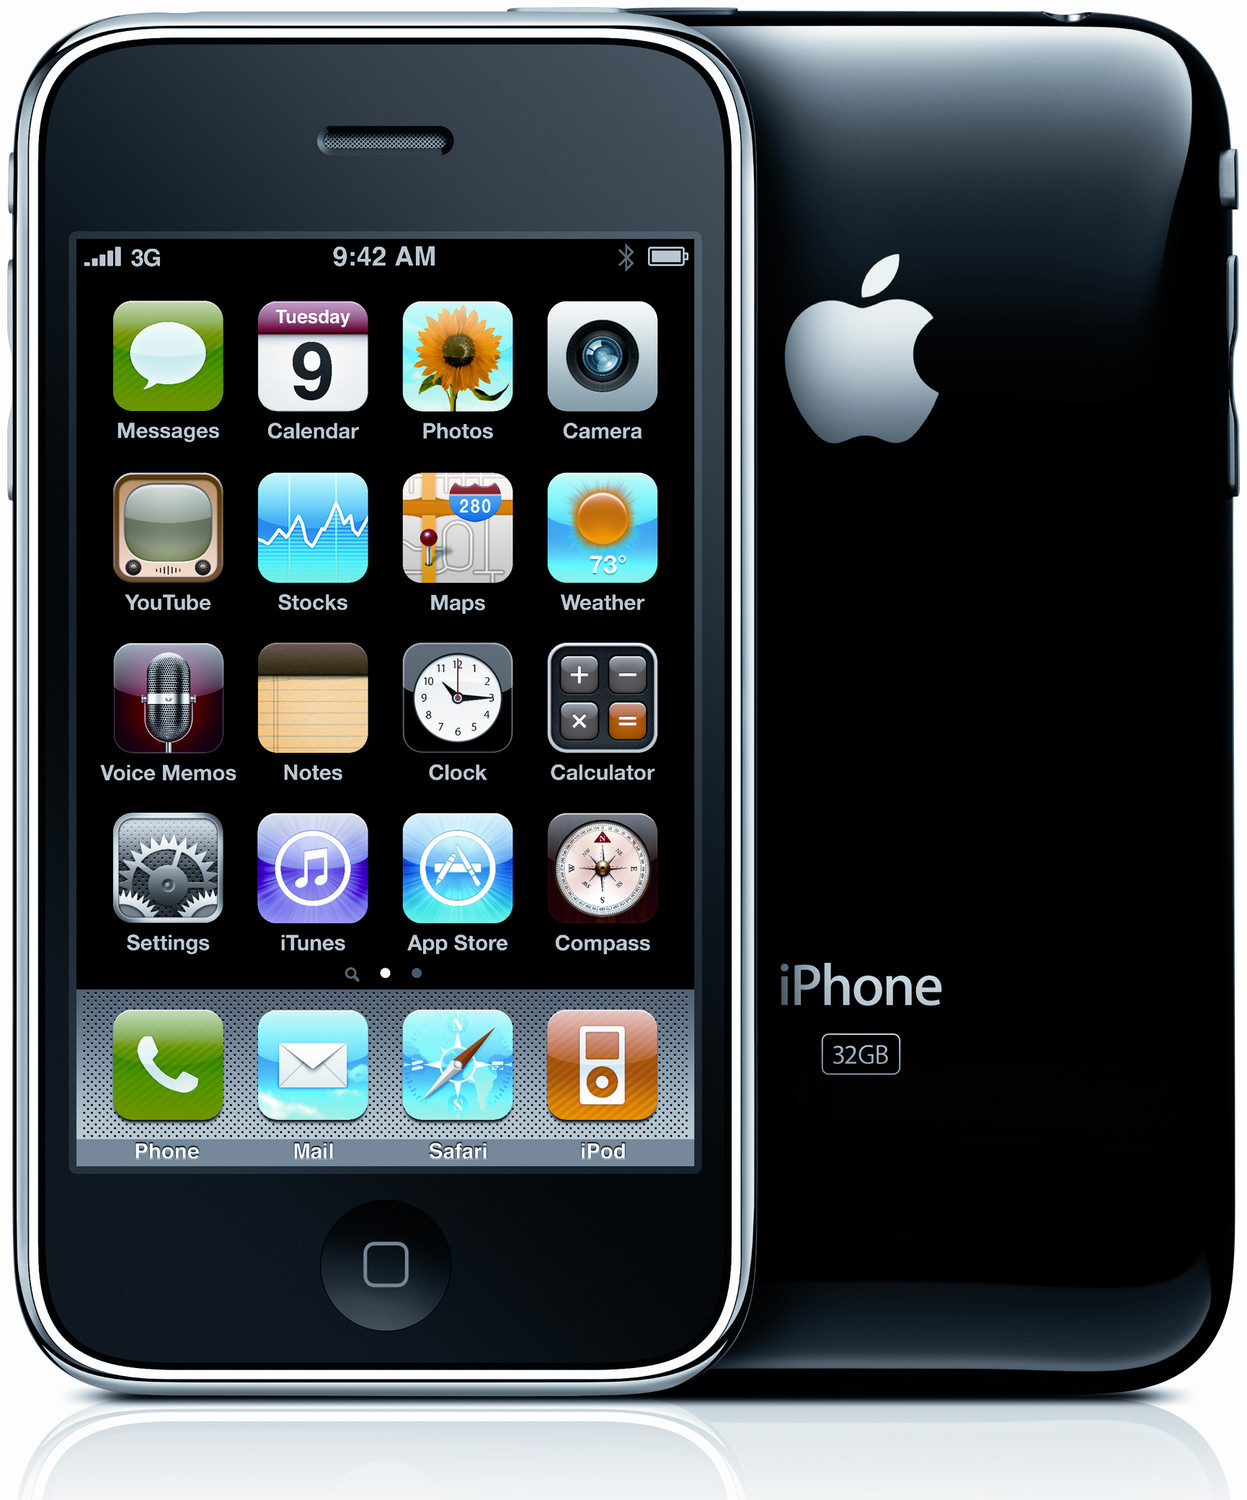 Apple Iphone 3gs 16gb Specs And Price Phonegg